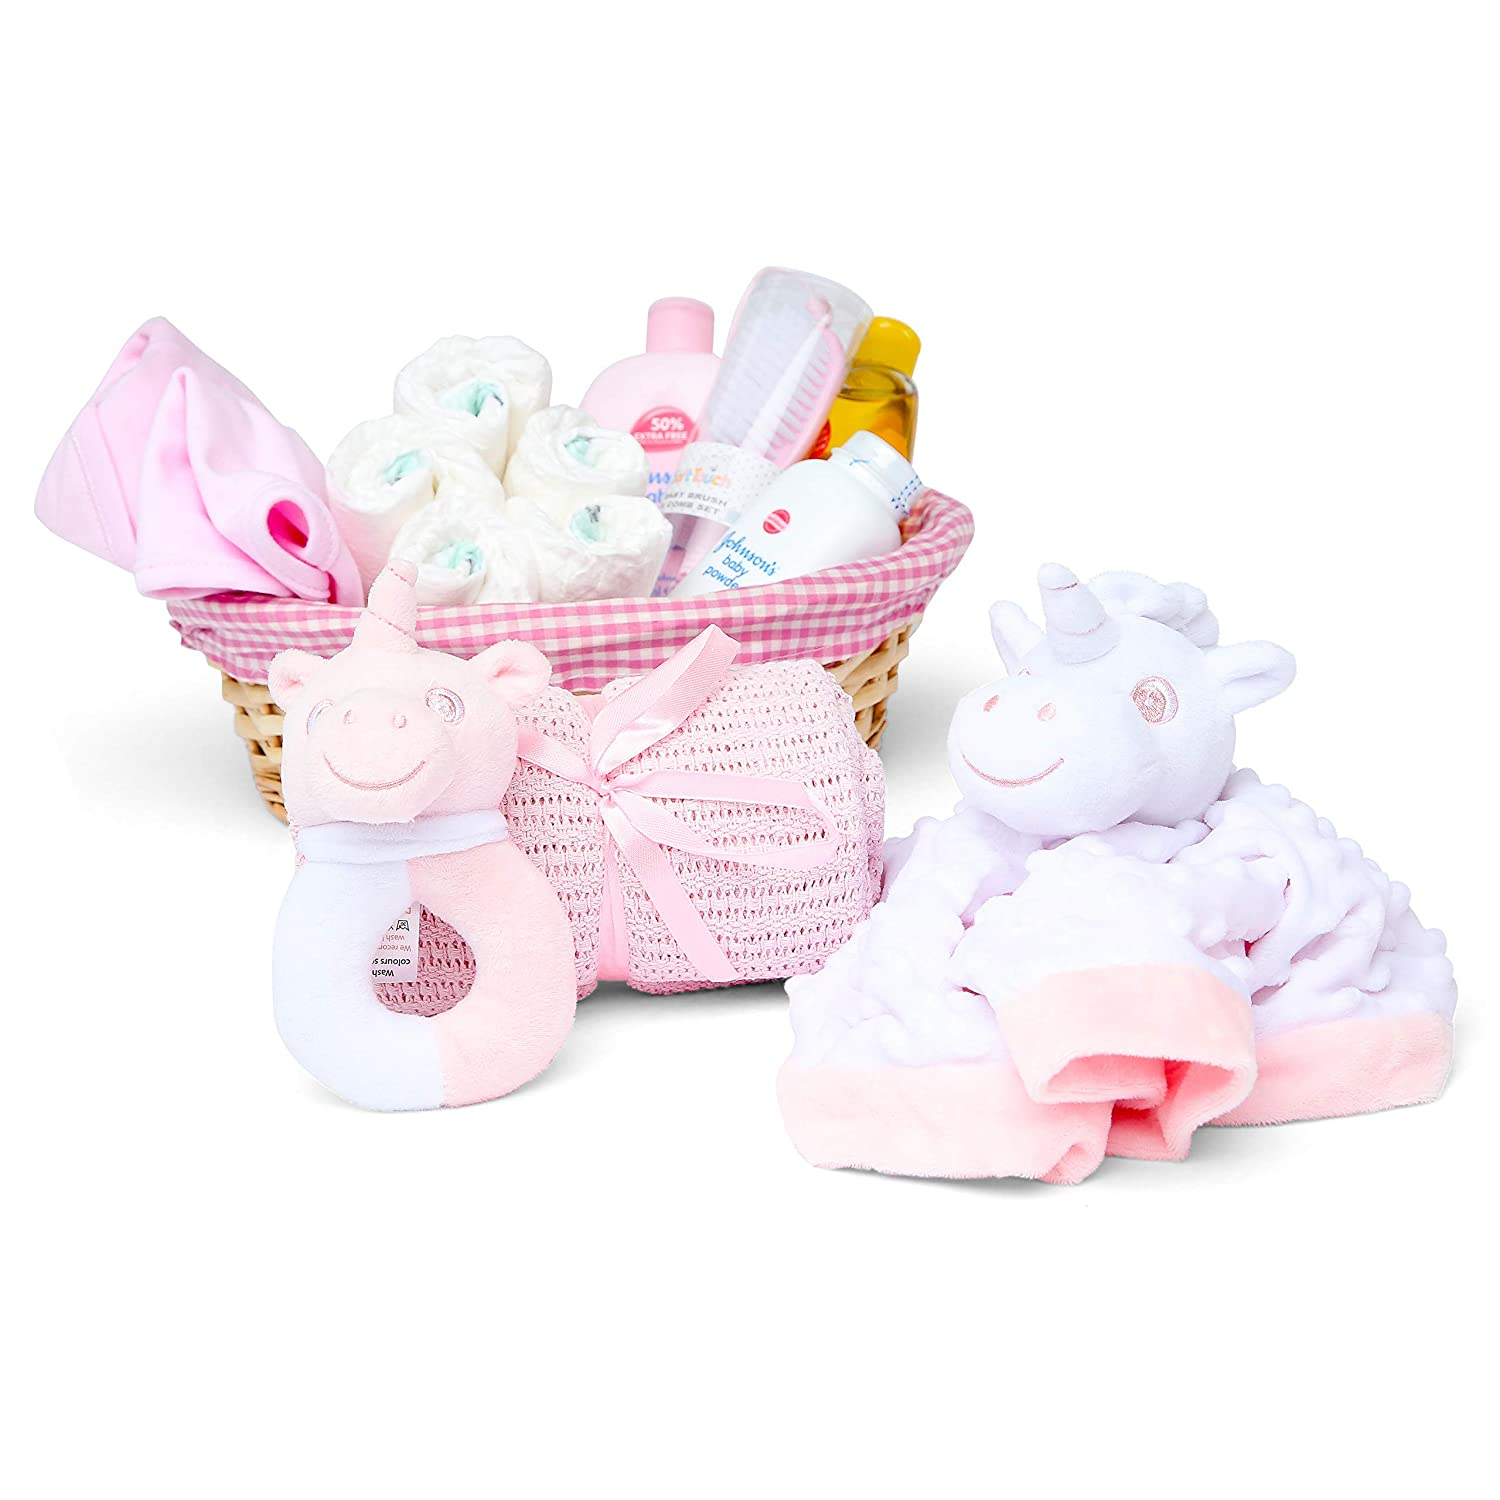 Baby Blanket Pink Unicorn Comforter and Rattle Baby Girl Hamper Basket with Baby Clothes Baby Box Shop Newborn Essentials